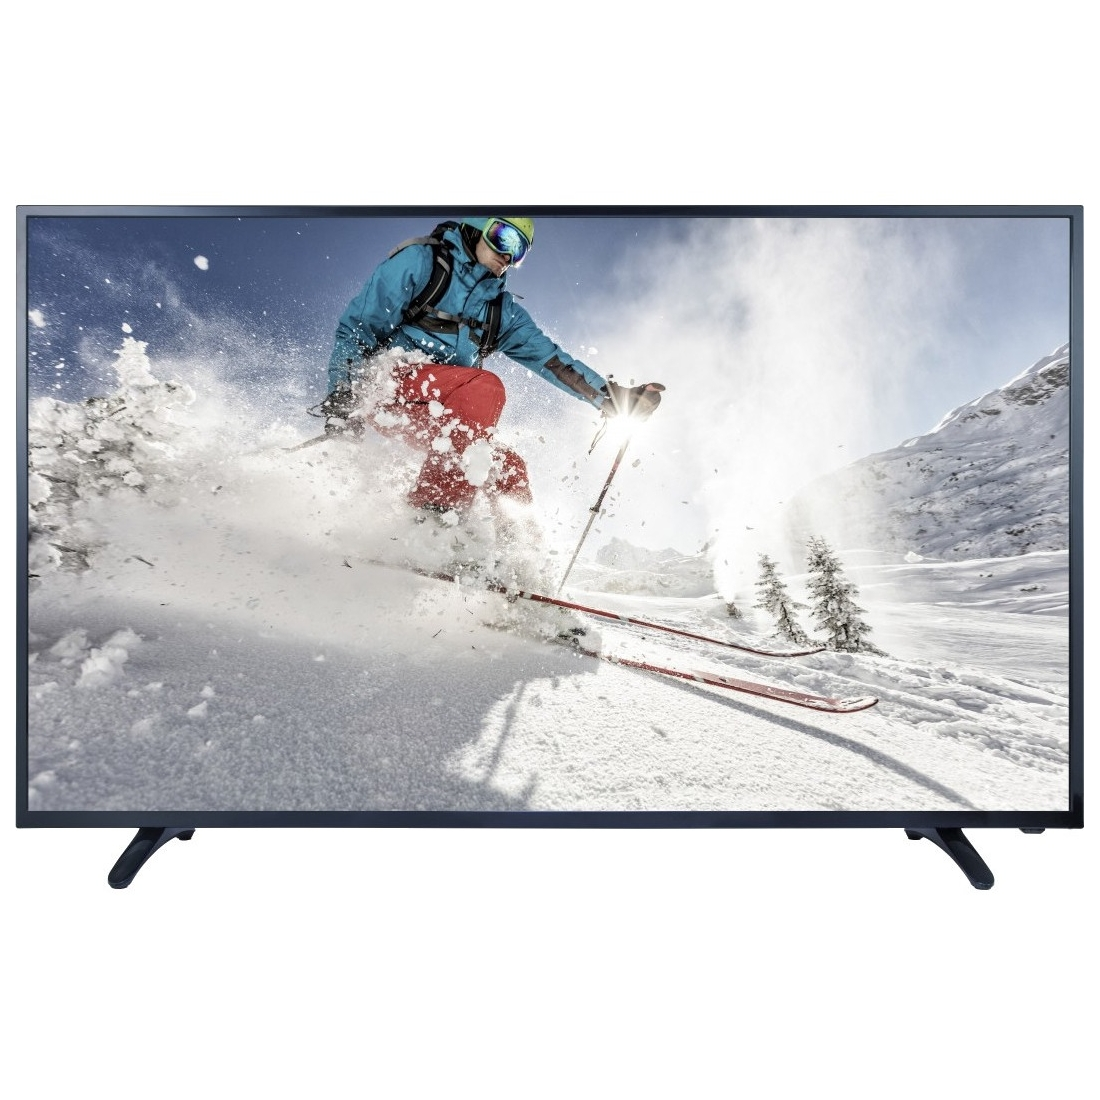 "NAXA 39"" Class LED TV and Media Player (NT-3902)"